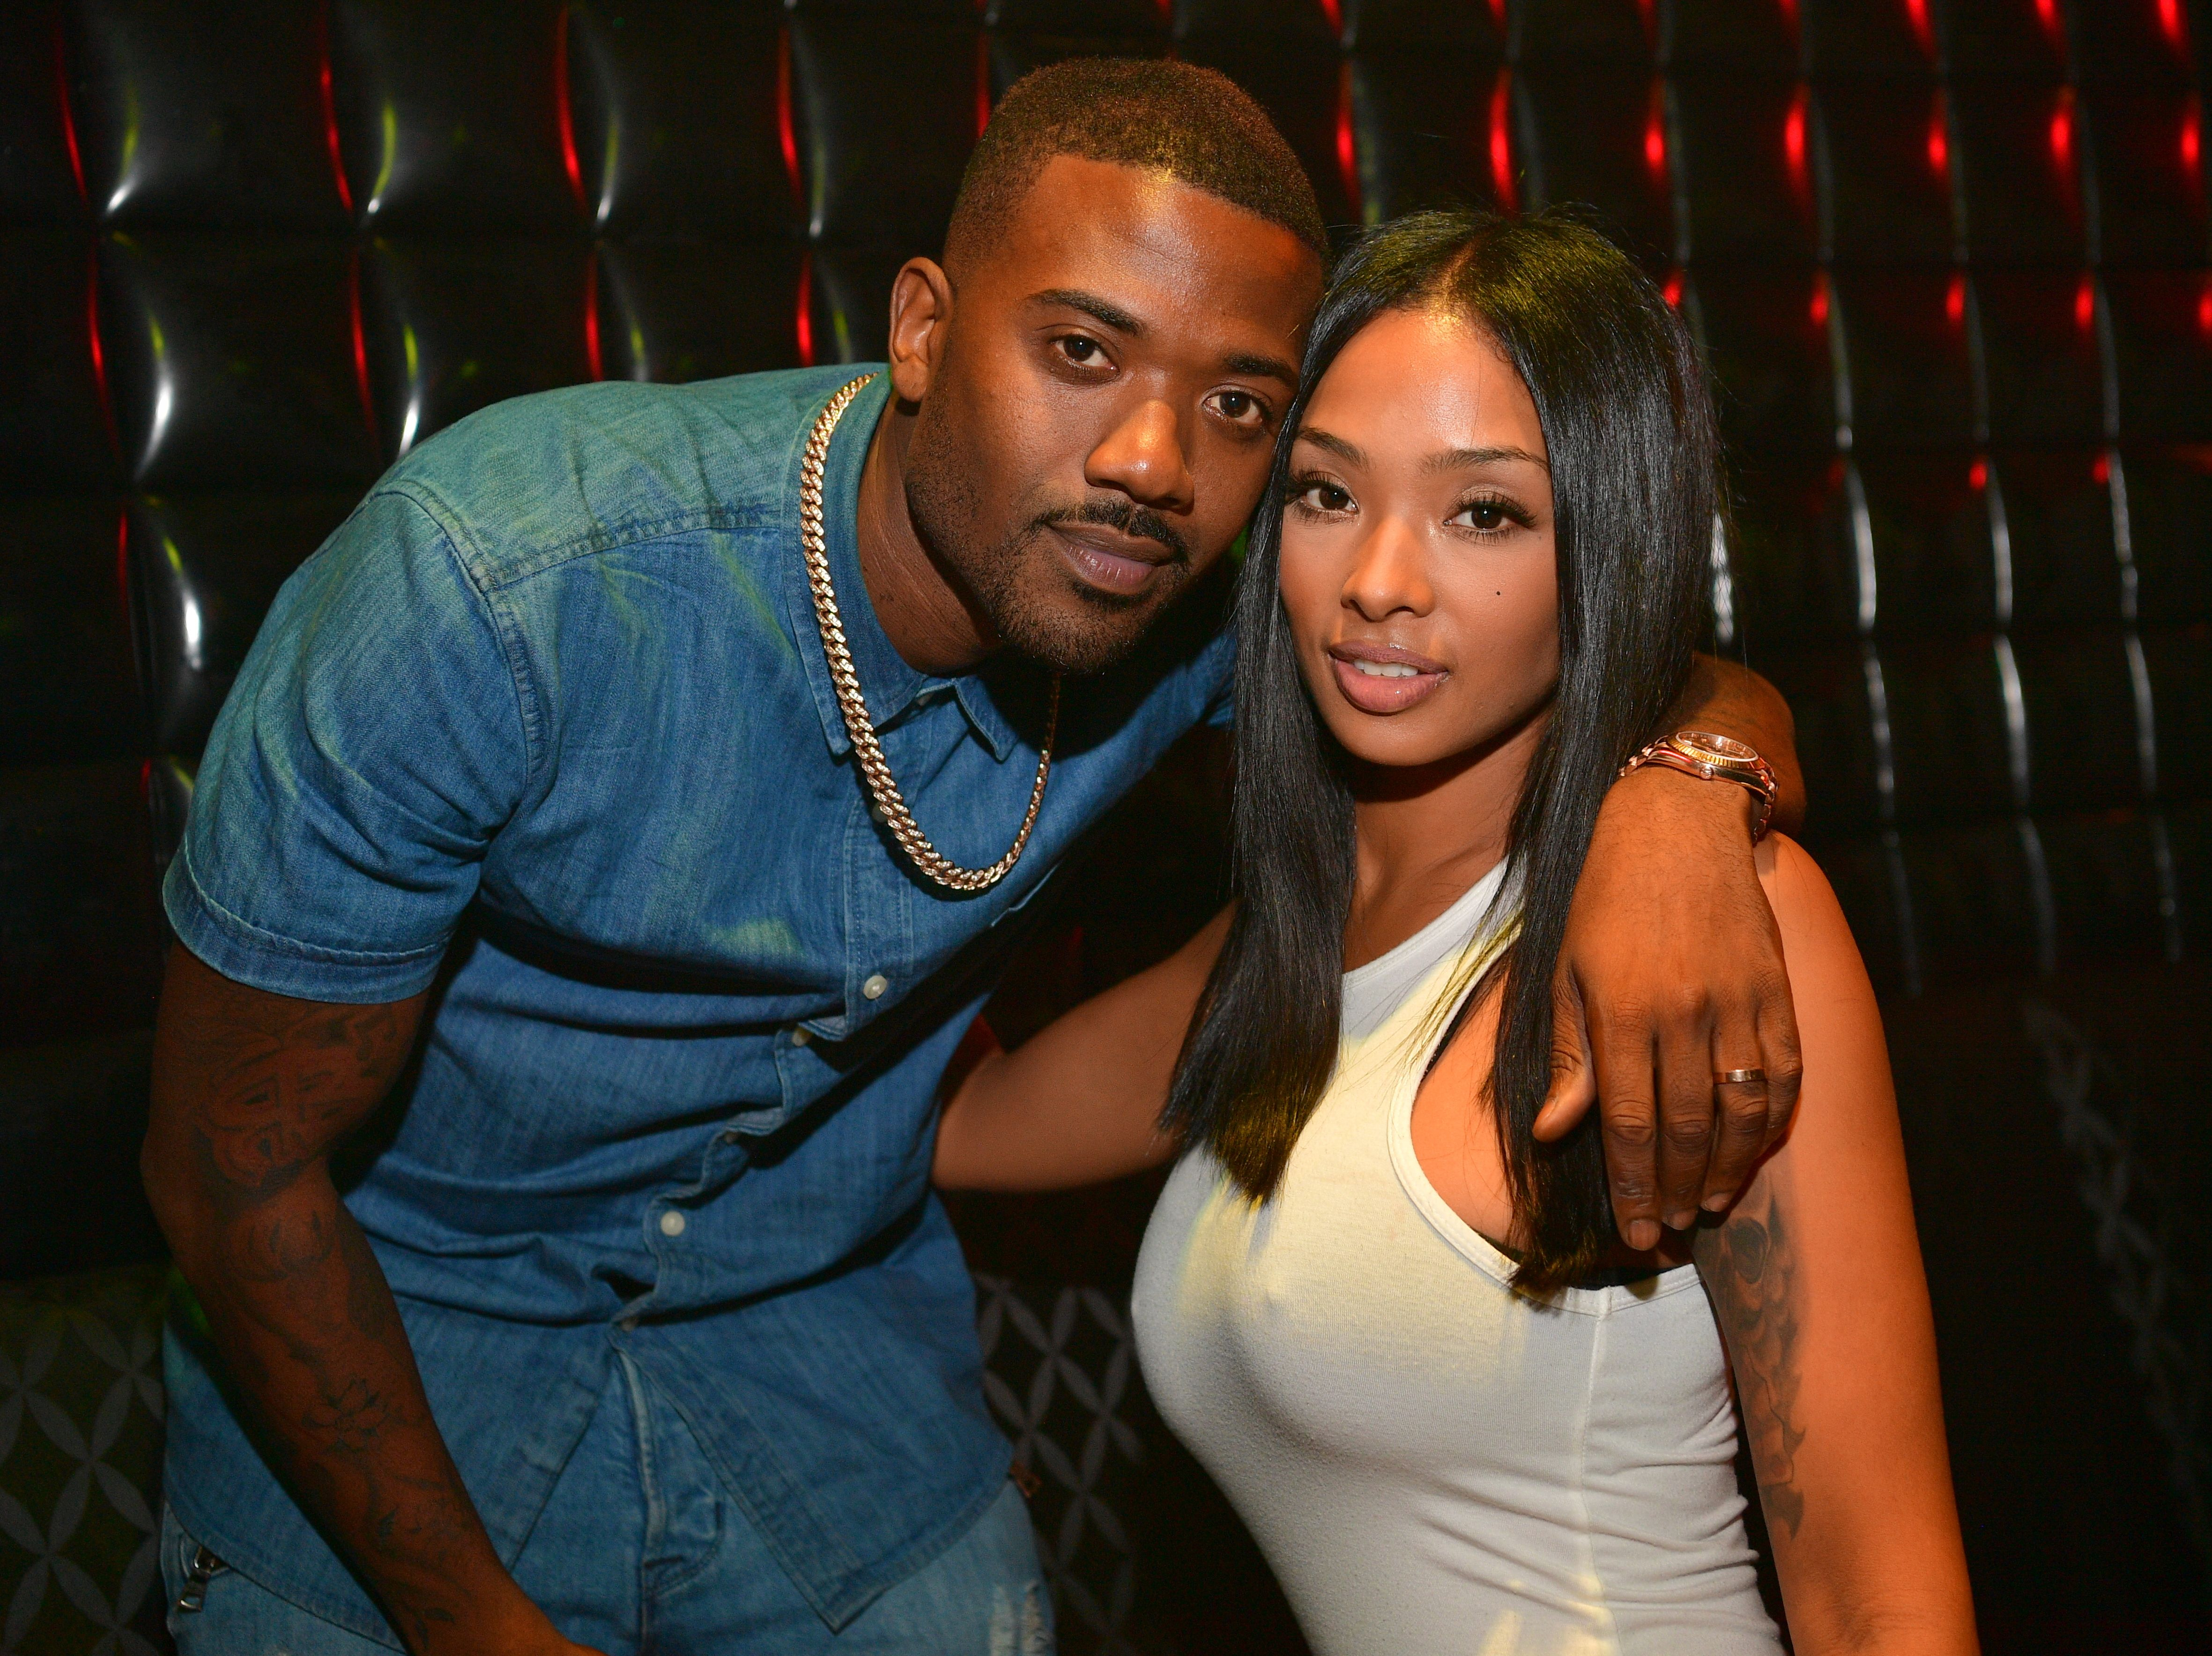 Ray J and Princess Love during a Hairshow After party at Medusa on August 21, 2016 in Atlanta, Georgia.   Source: Getty Images